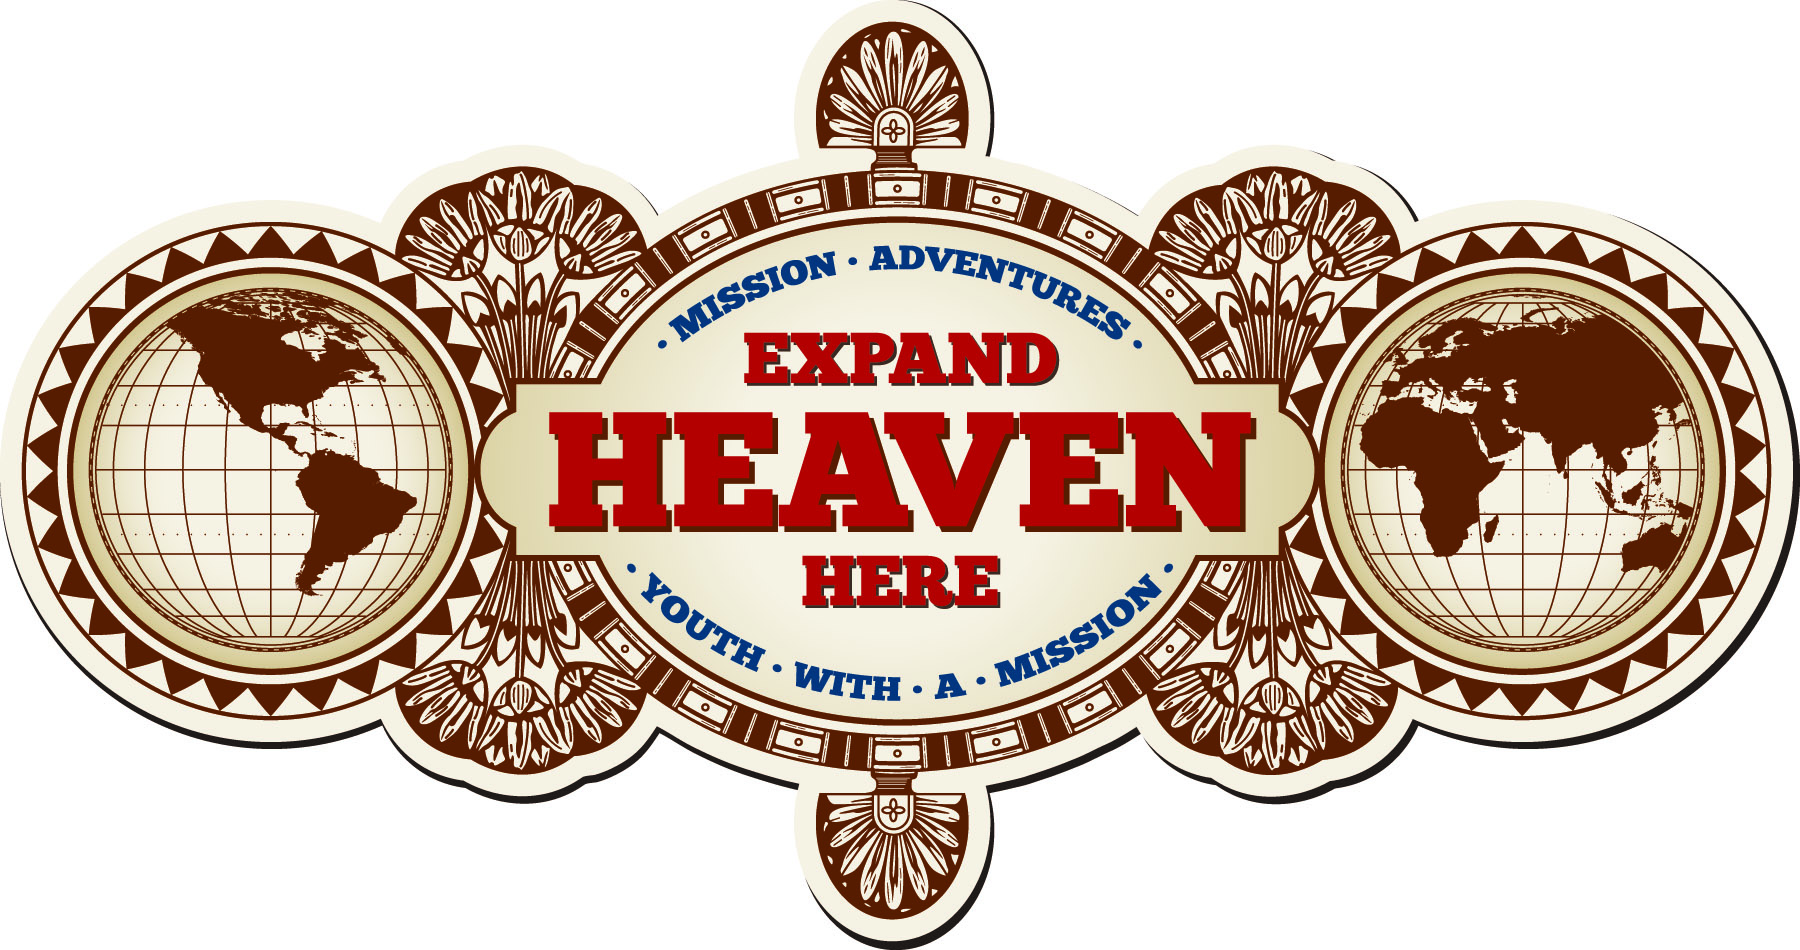 Expand Heaven Between Globes Stacked.jpg